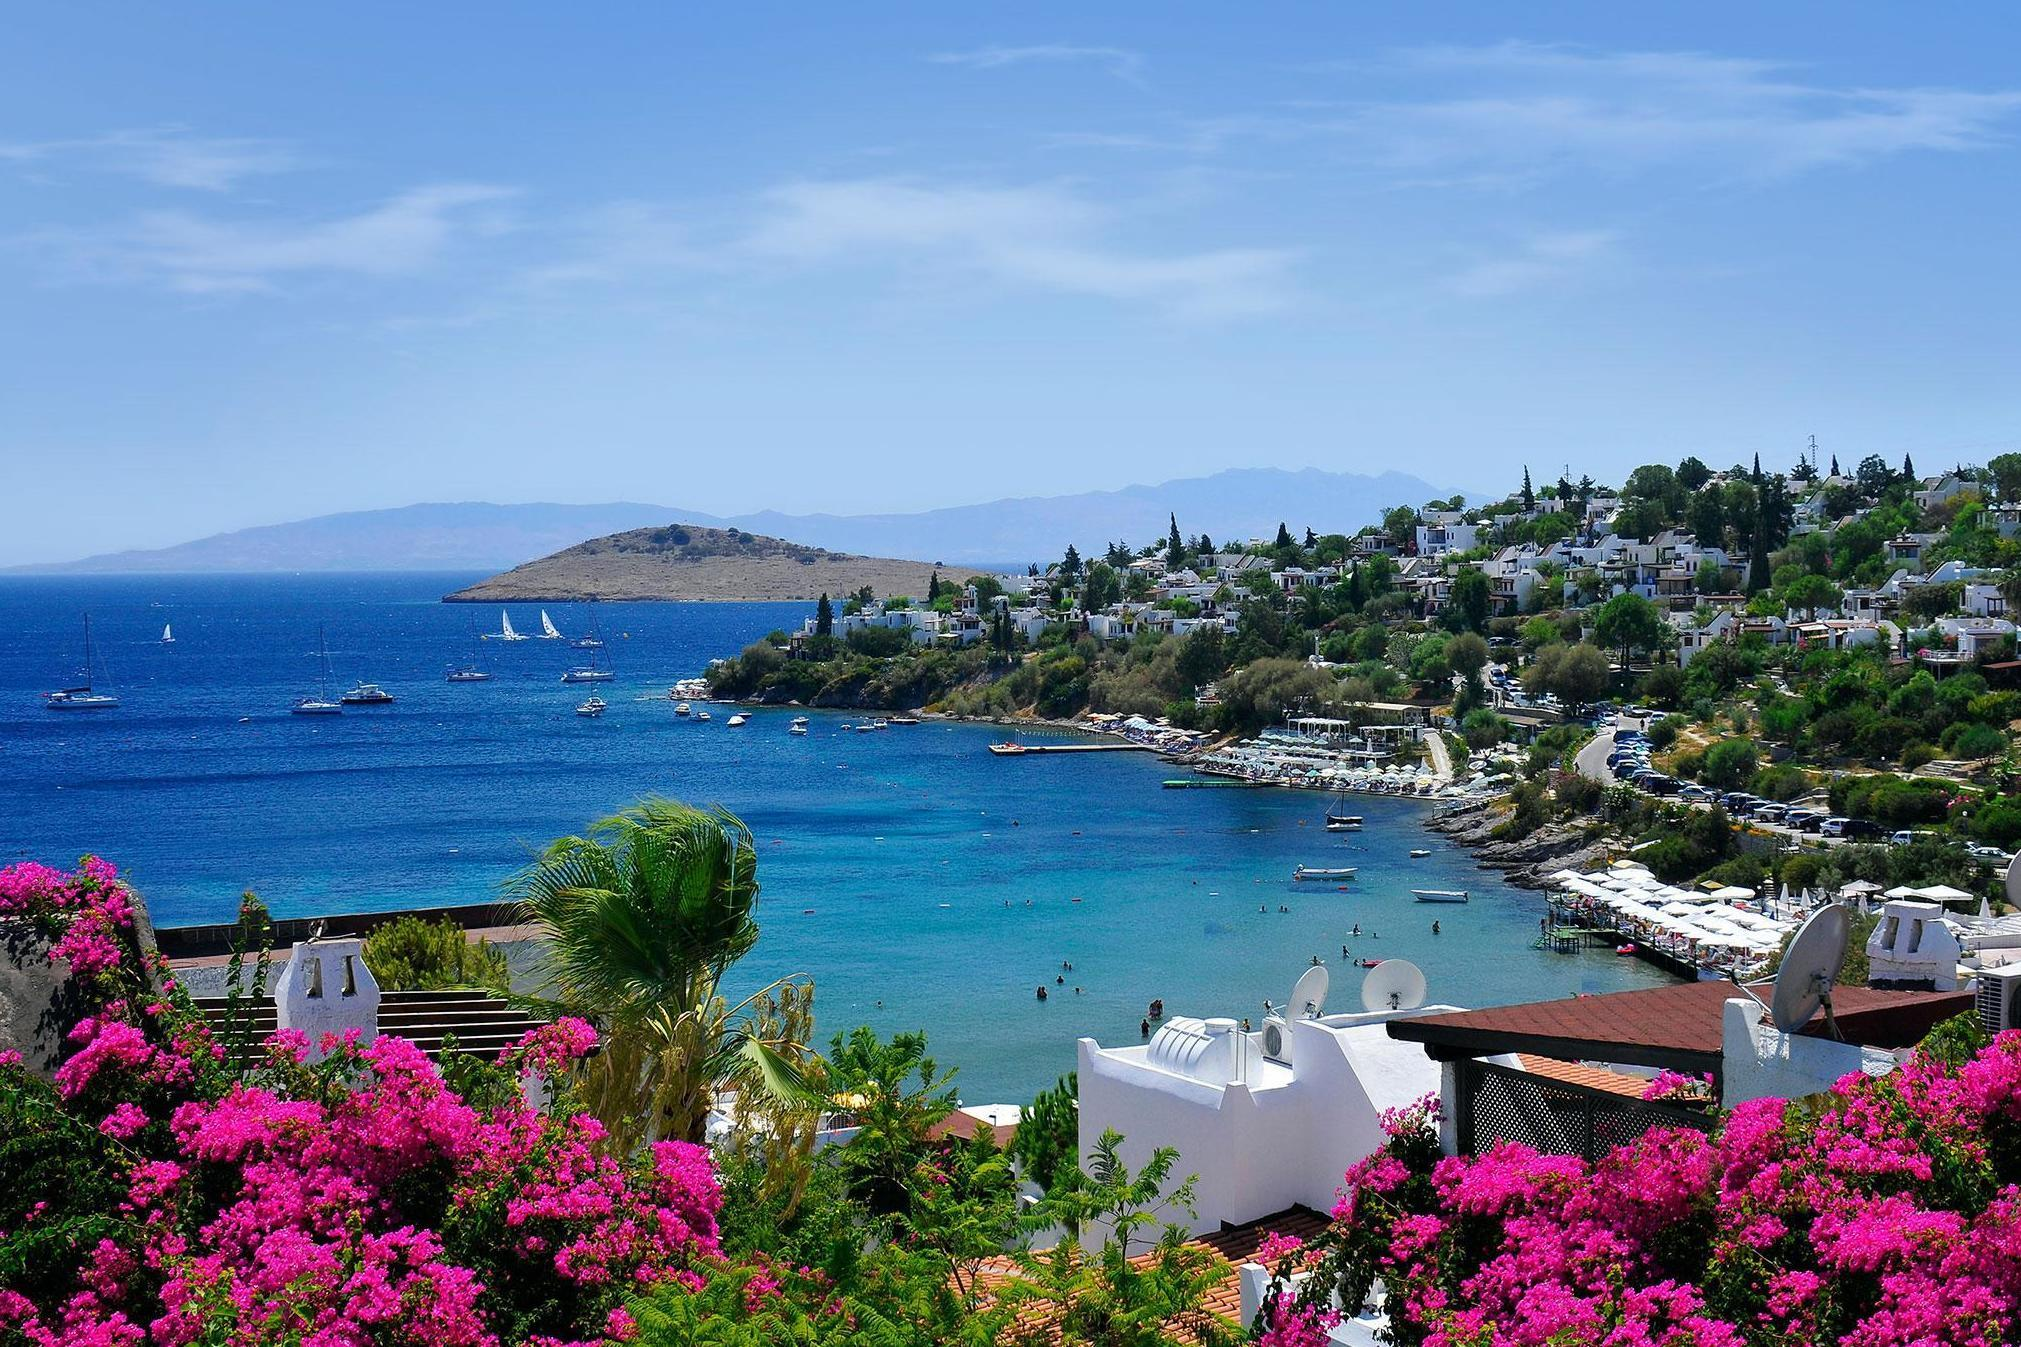 Mykonos Mini Cabin Tour - Blue Cruise,Light Tours Blue Cruise, Blue Cruise, Discount Tours 306